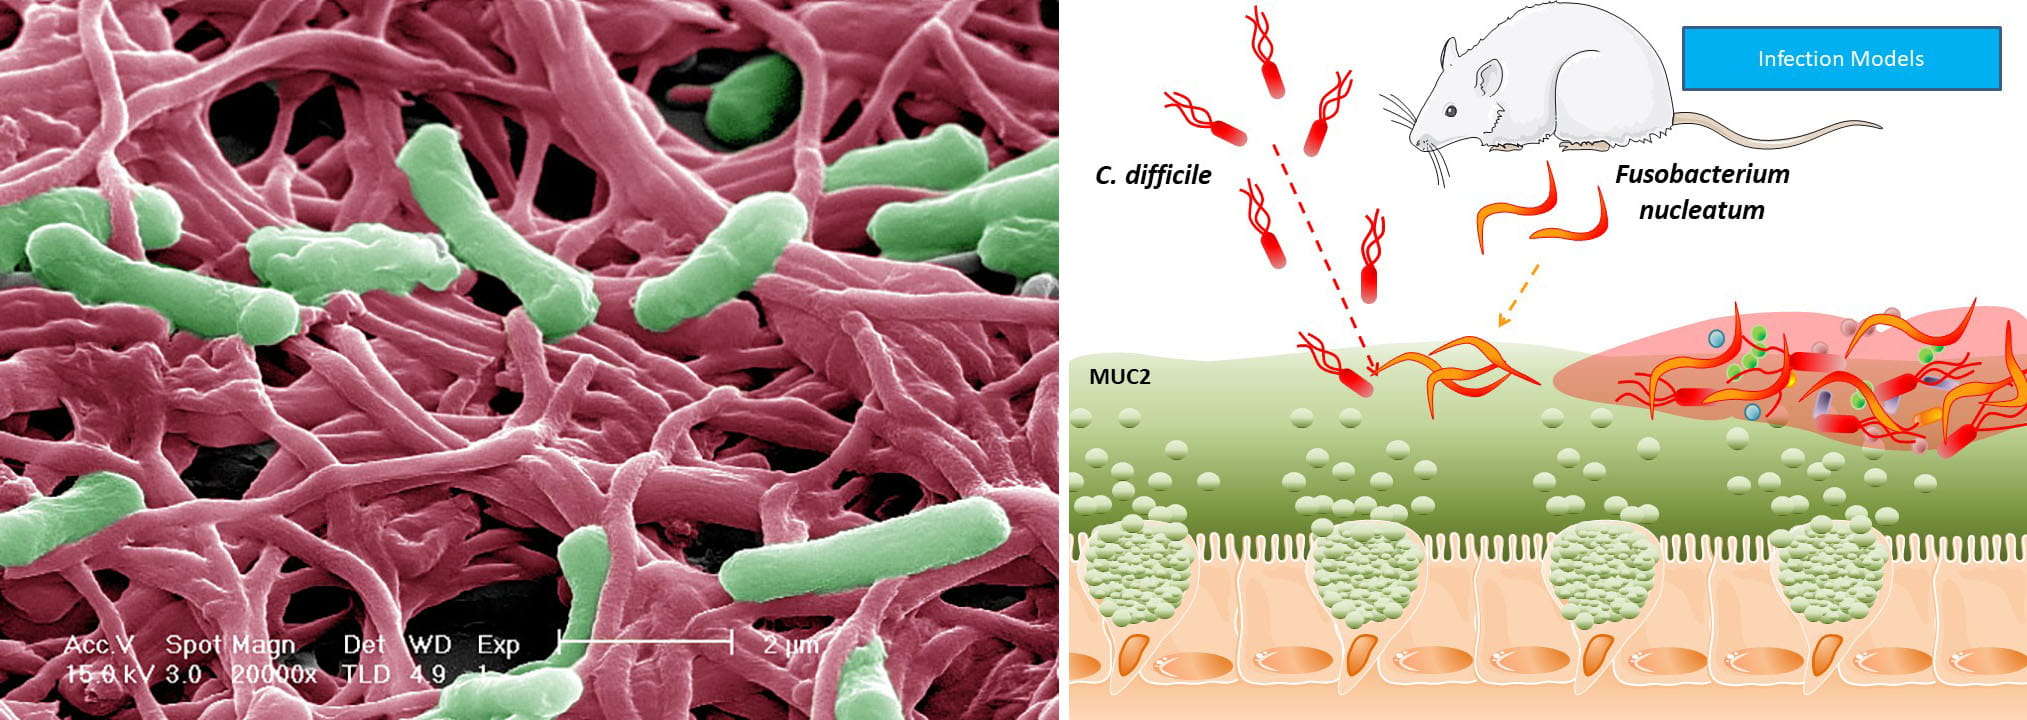 Working model of how pathogens colonize and subvert the mucus layer to cause infection